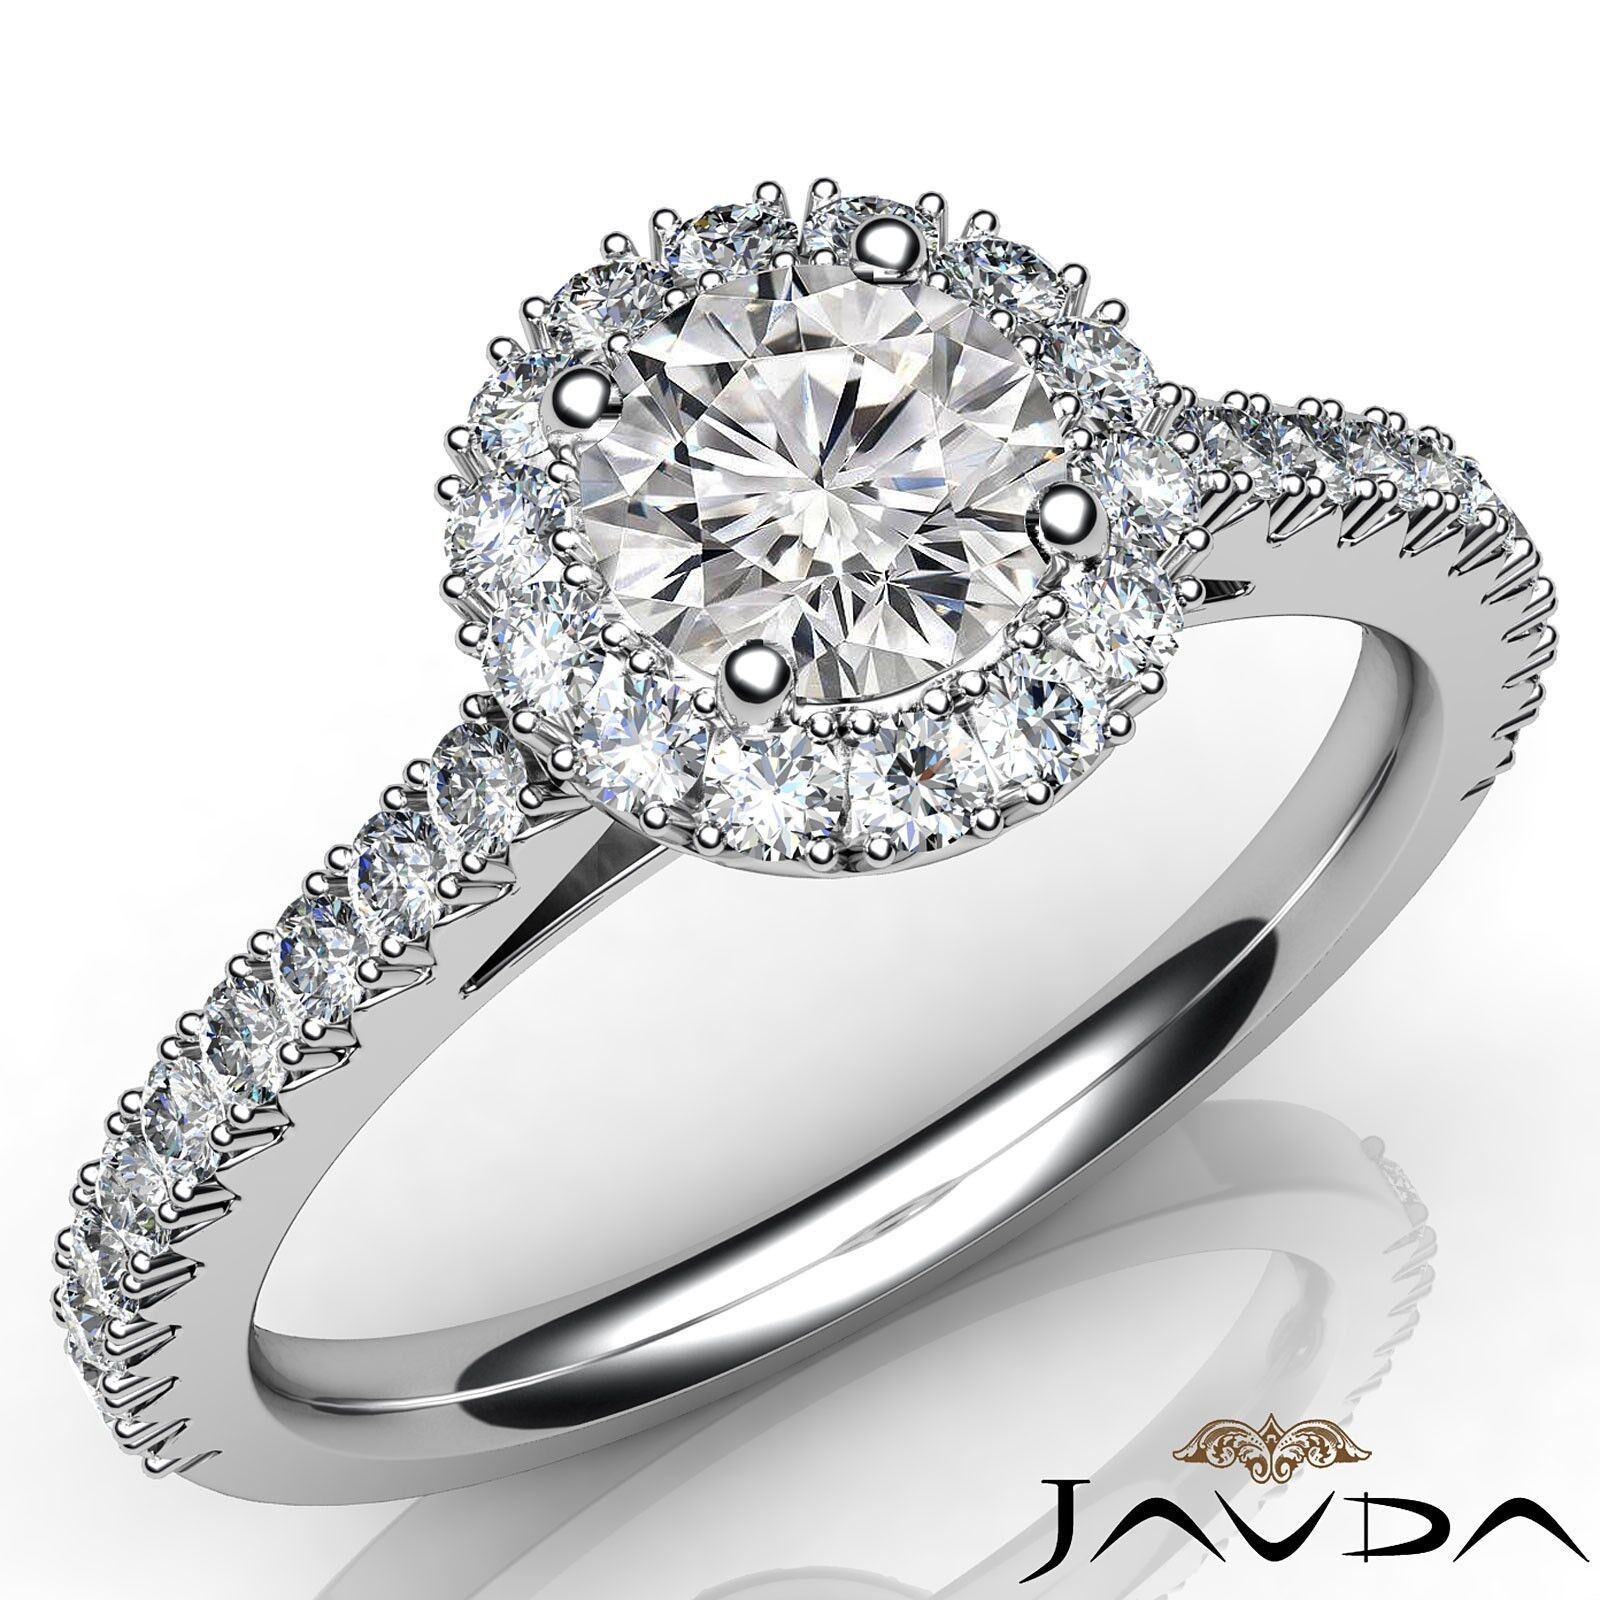 Halo Double Prong Round Natural Diamond Engagement Wedding Ring GIA F VS1 1.5 Ct